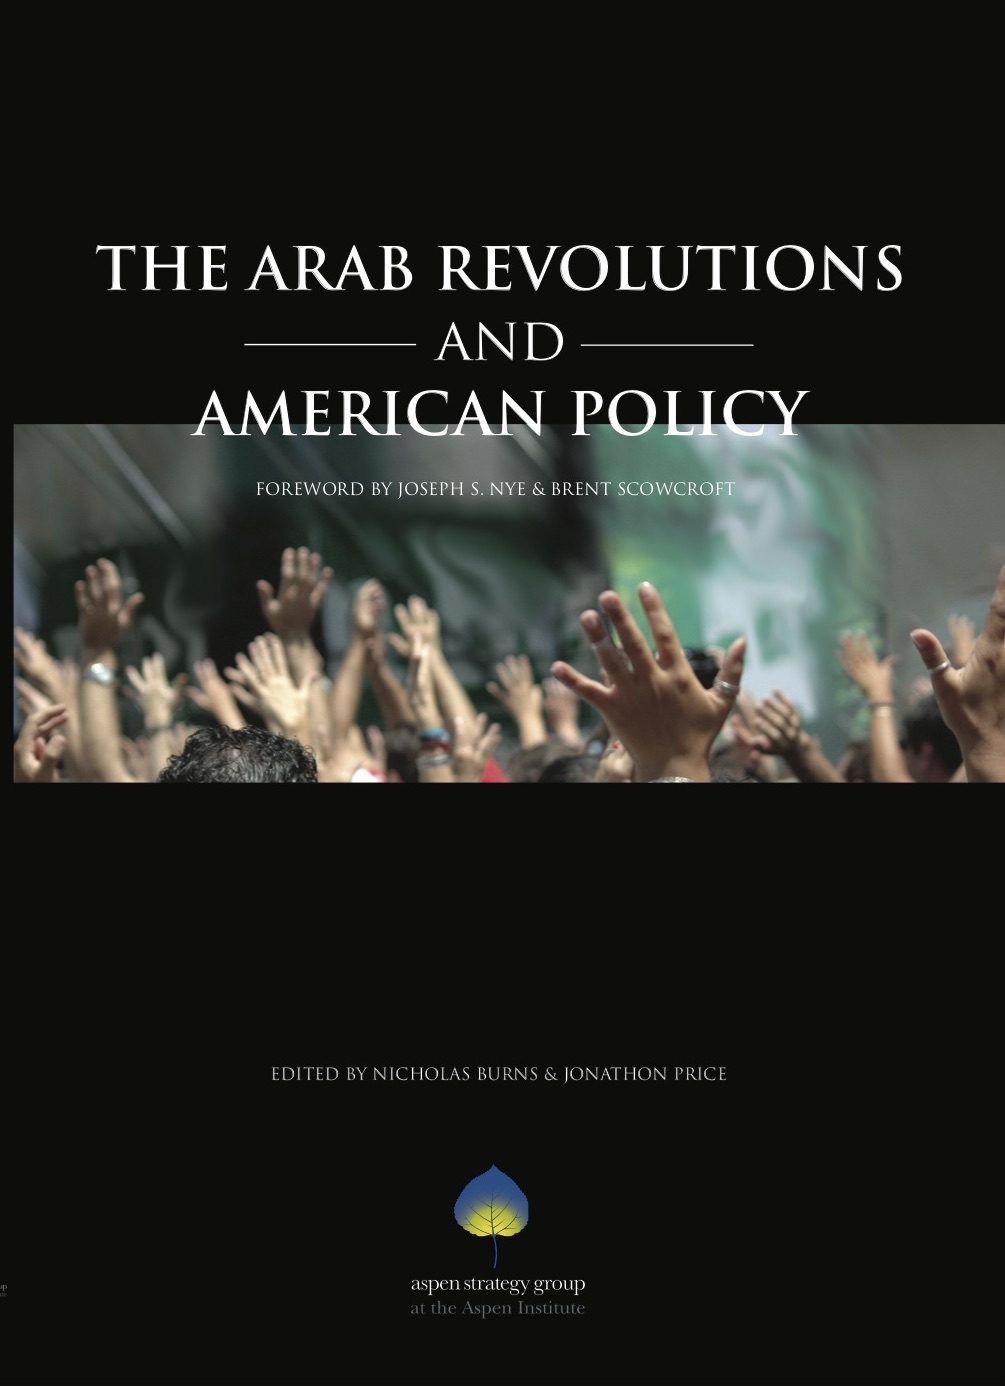 The Arab Revolutions & American Policy - This book is a collection of papers commissioned for the 2012 Aspen Strategy Group Summer Workshop, a bipartisan meeting of top national security experts. The papers evaluate the various drivers and outcomes of the Arab revolutions, all of which continue to bear an ever-greater influence on the formulation of American strategy in the Middle East. Authors examine the critical period of transition in Egypt, escalating violence and options of intervention in Syria, the threats associated with a nuclear Iran, balancing an effective strategy of immediate economic assistance and long-term investment in the region, and the Obama administration''s successes and failures during the overall process of democratization.Contributors include: Graham Allison, Melissa Dalton, Kito de Boer, Peter Feaver, Michèle Flournoy, Richard Haass, Stephen Hadley, David Ignatius, Martin Indyk, Colin Kahl, and Tarek MasoudPublished: April 1, 2013